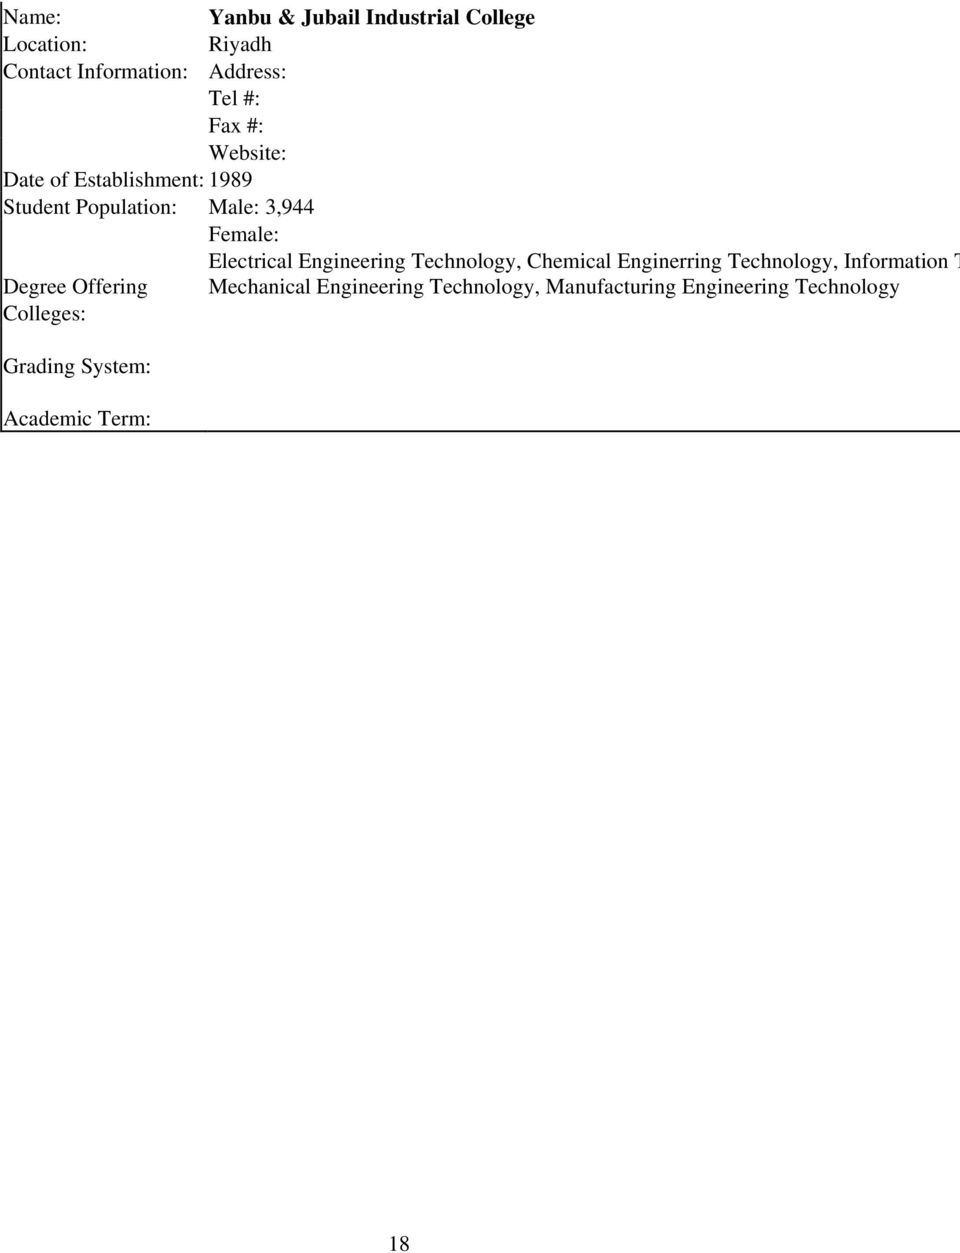 Engineering Technology, Chemical Enginerring Technology, Information T Degree Offering Mechanical